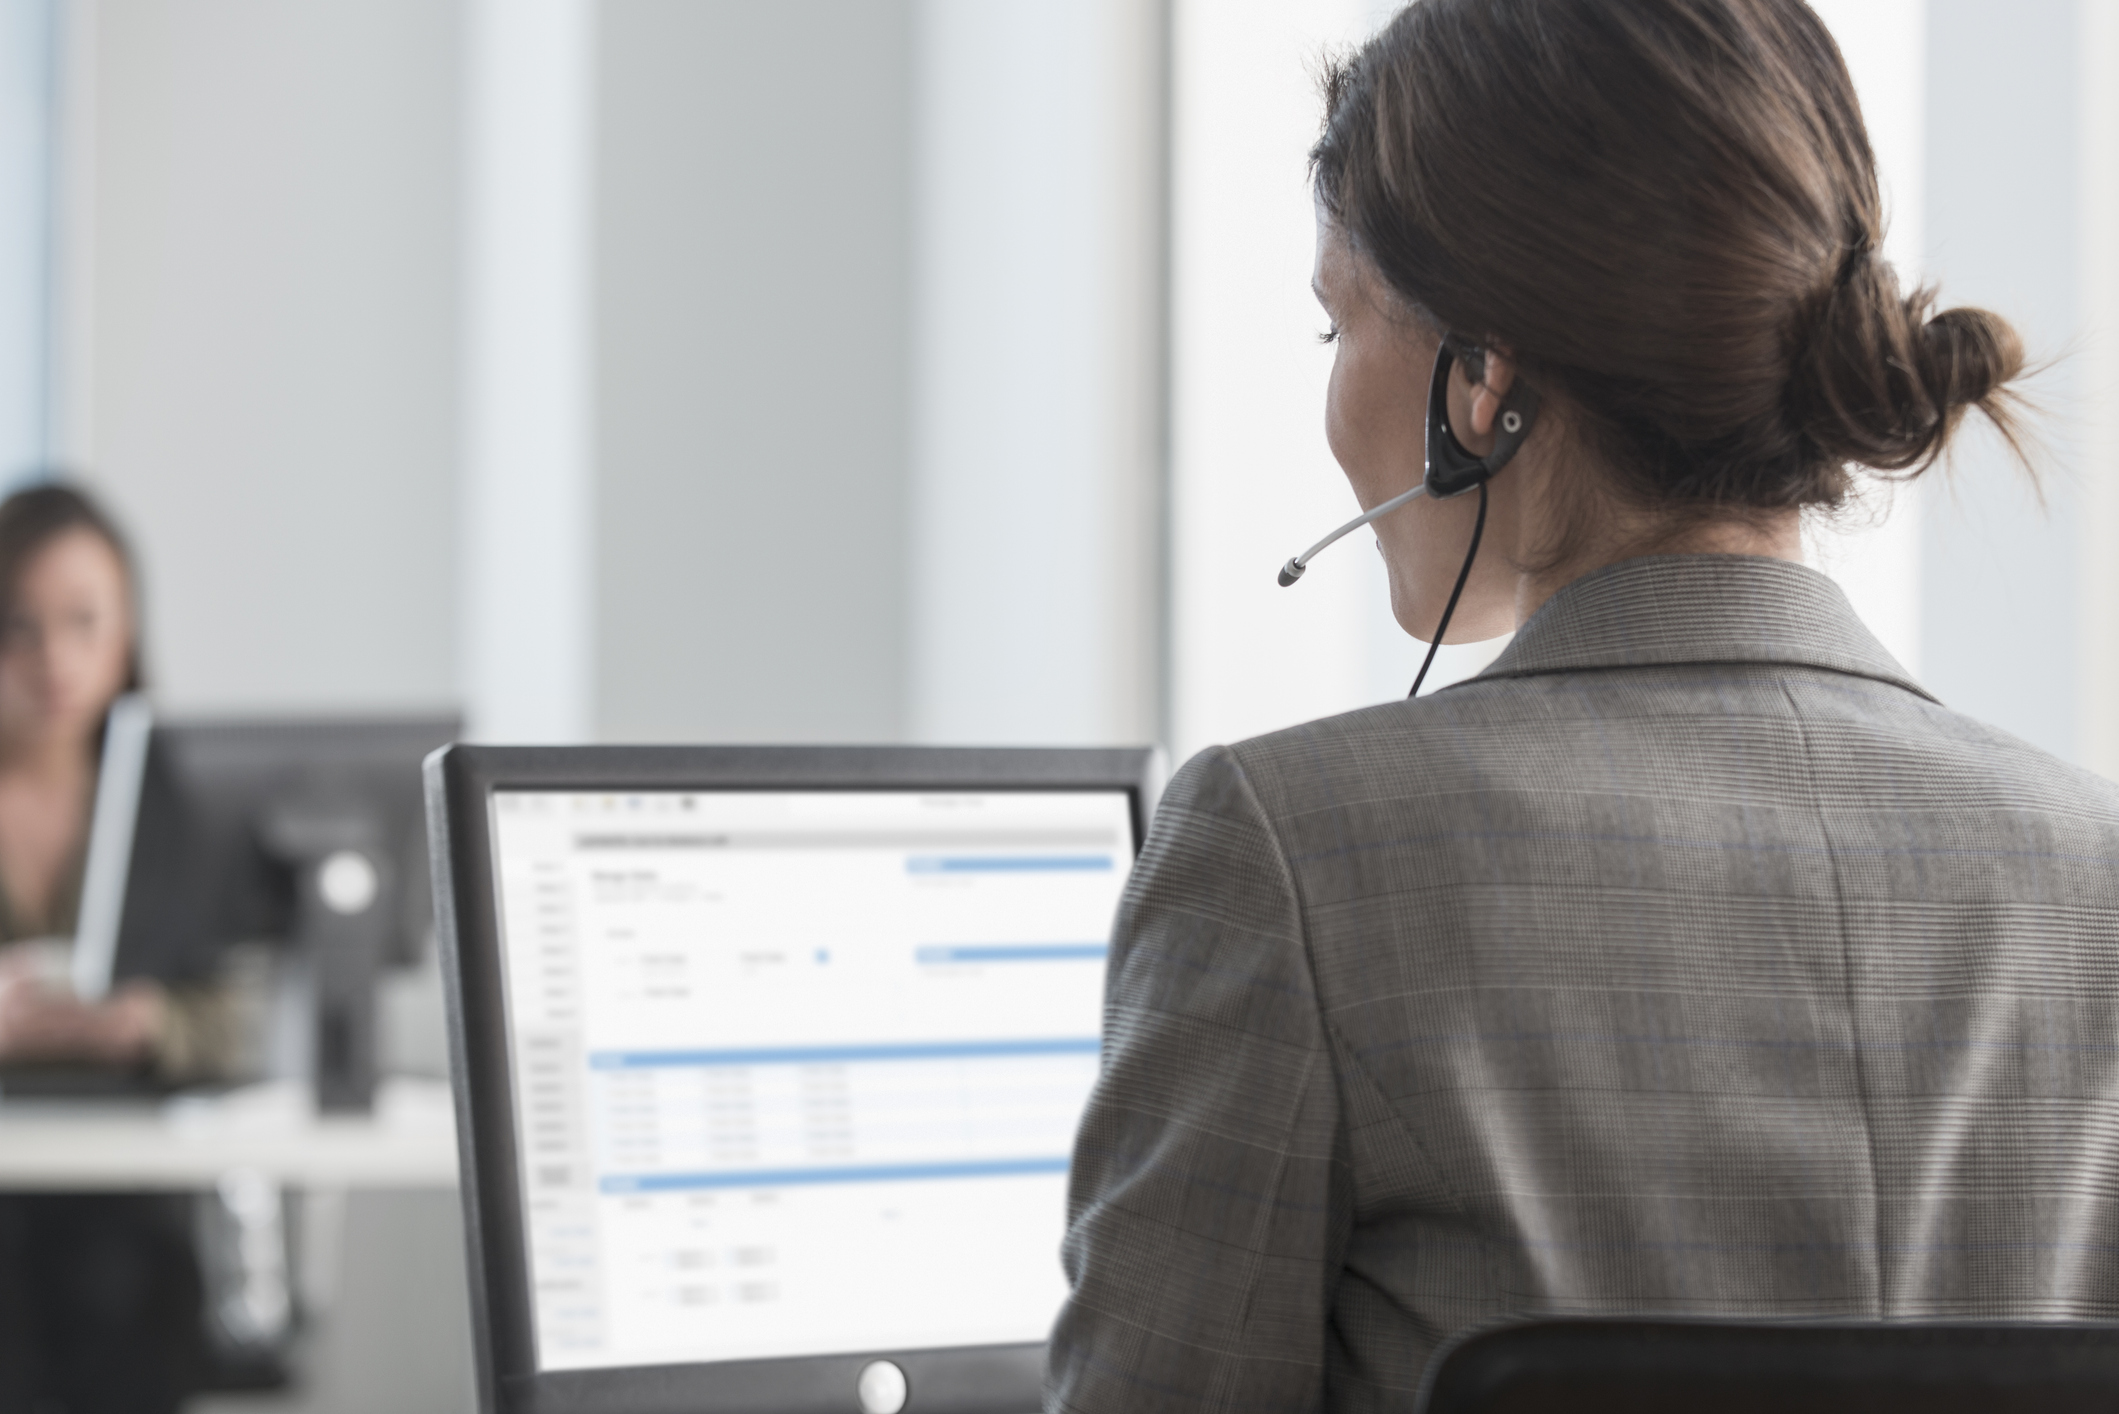 techcrunch.com - Ron Miller - Salesforce update brings AI and Quip to customer service chat experience